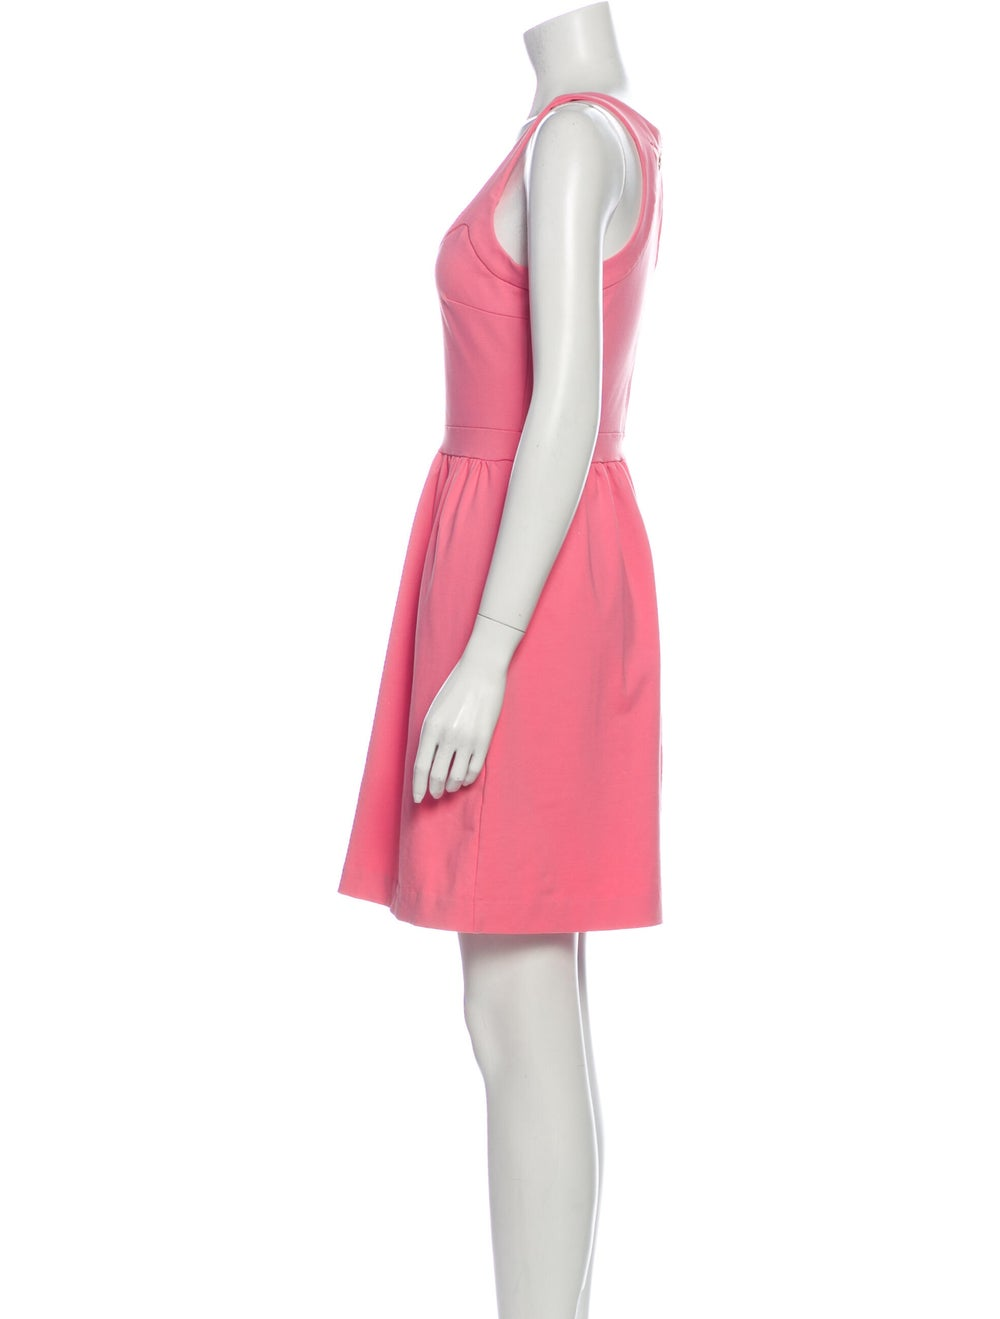 Cynthia Rowley Scoop Neck Mini Dress Pink - image 2